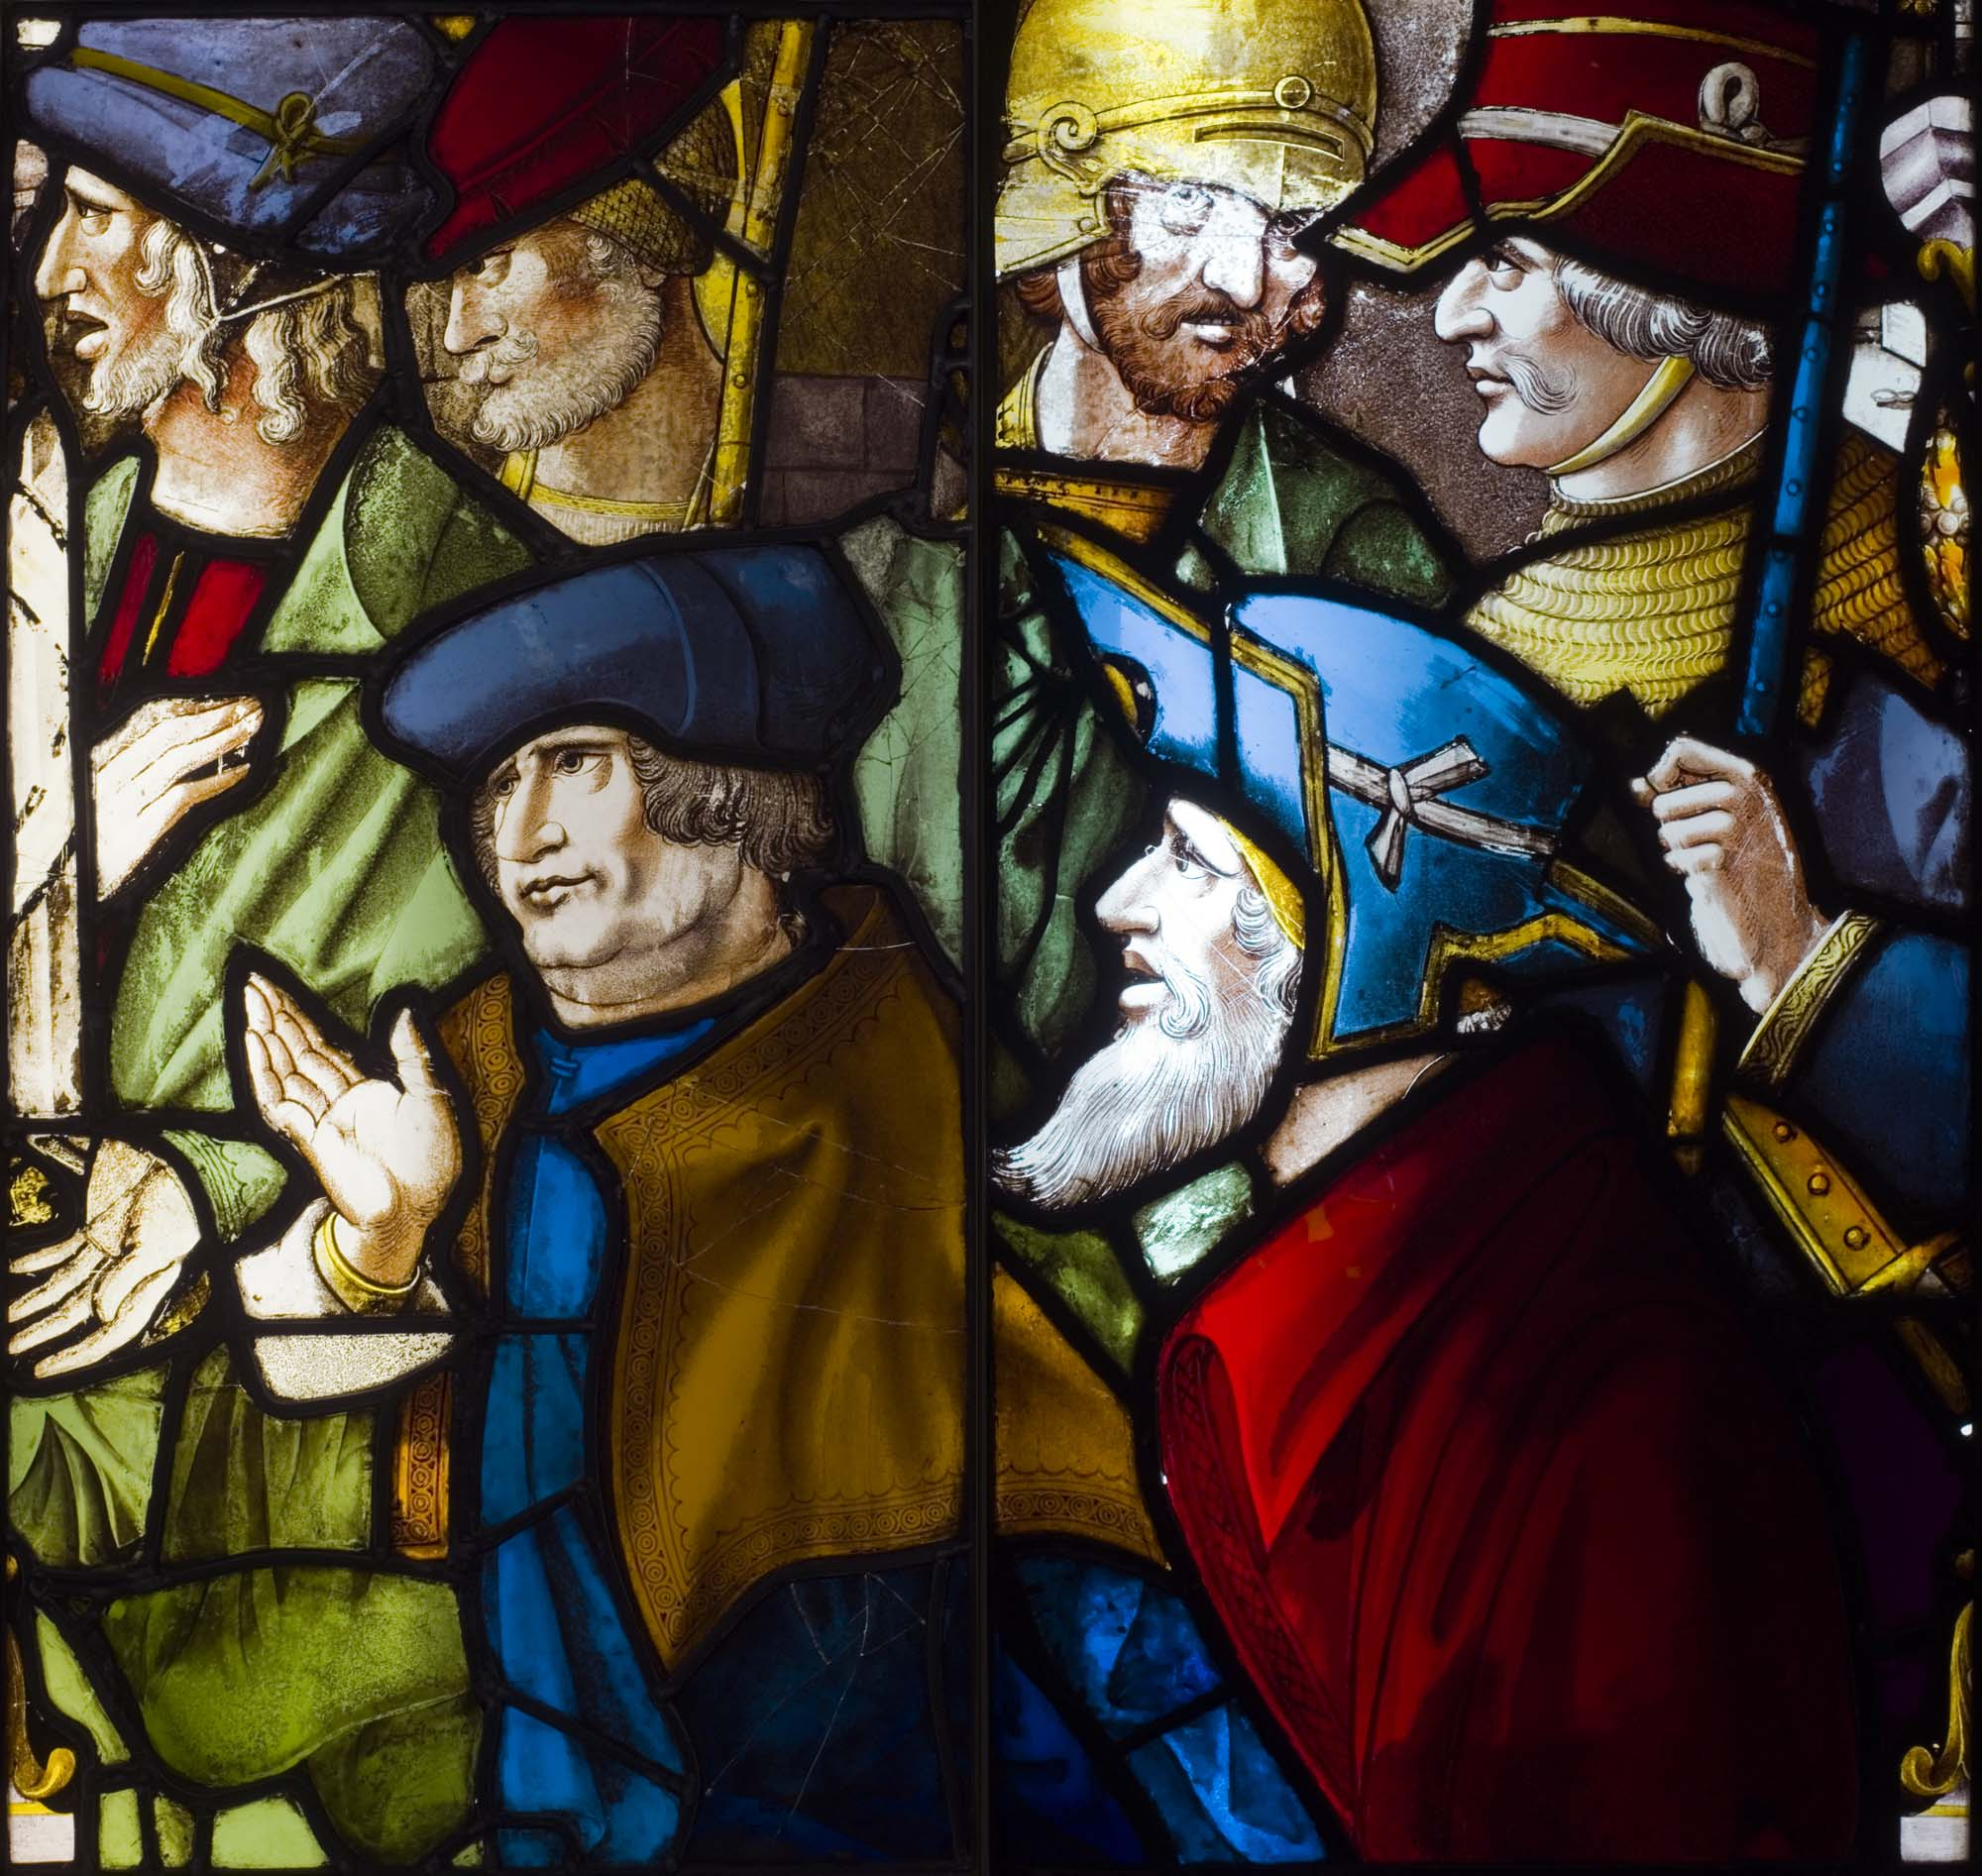 a photo of a large stained glass window with a group of medieval men in hats